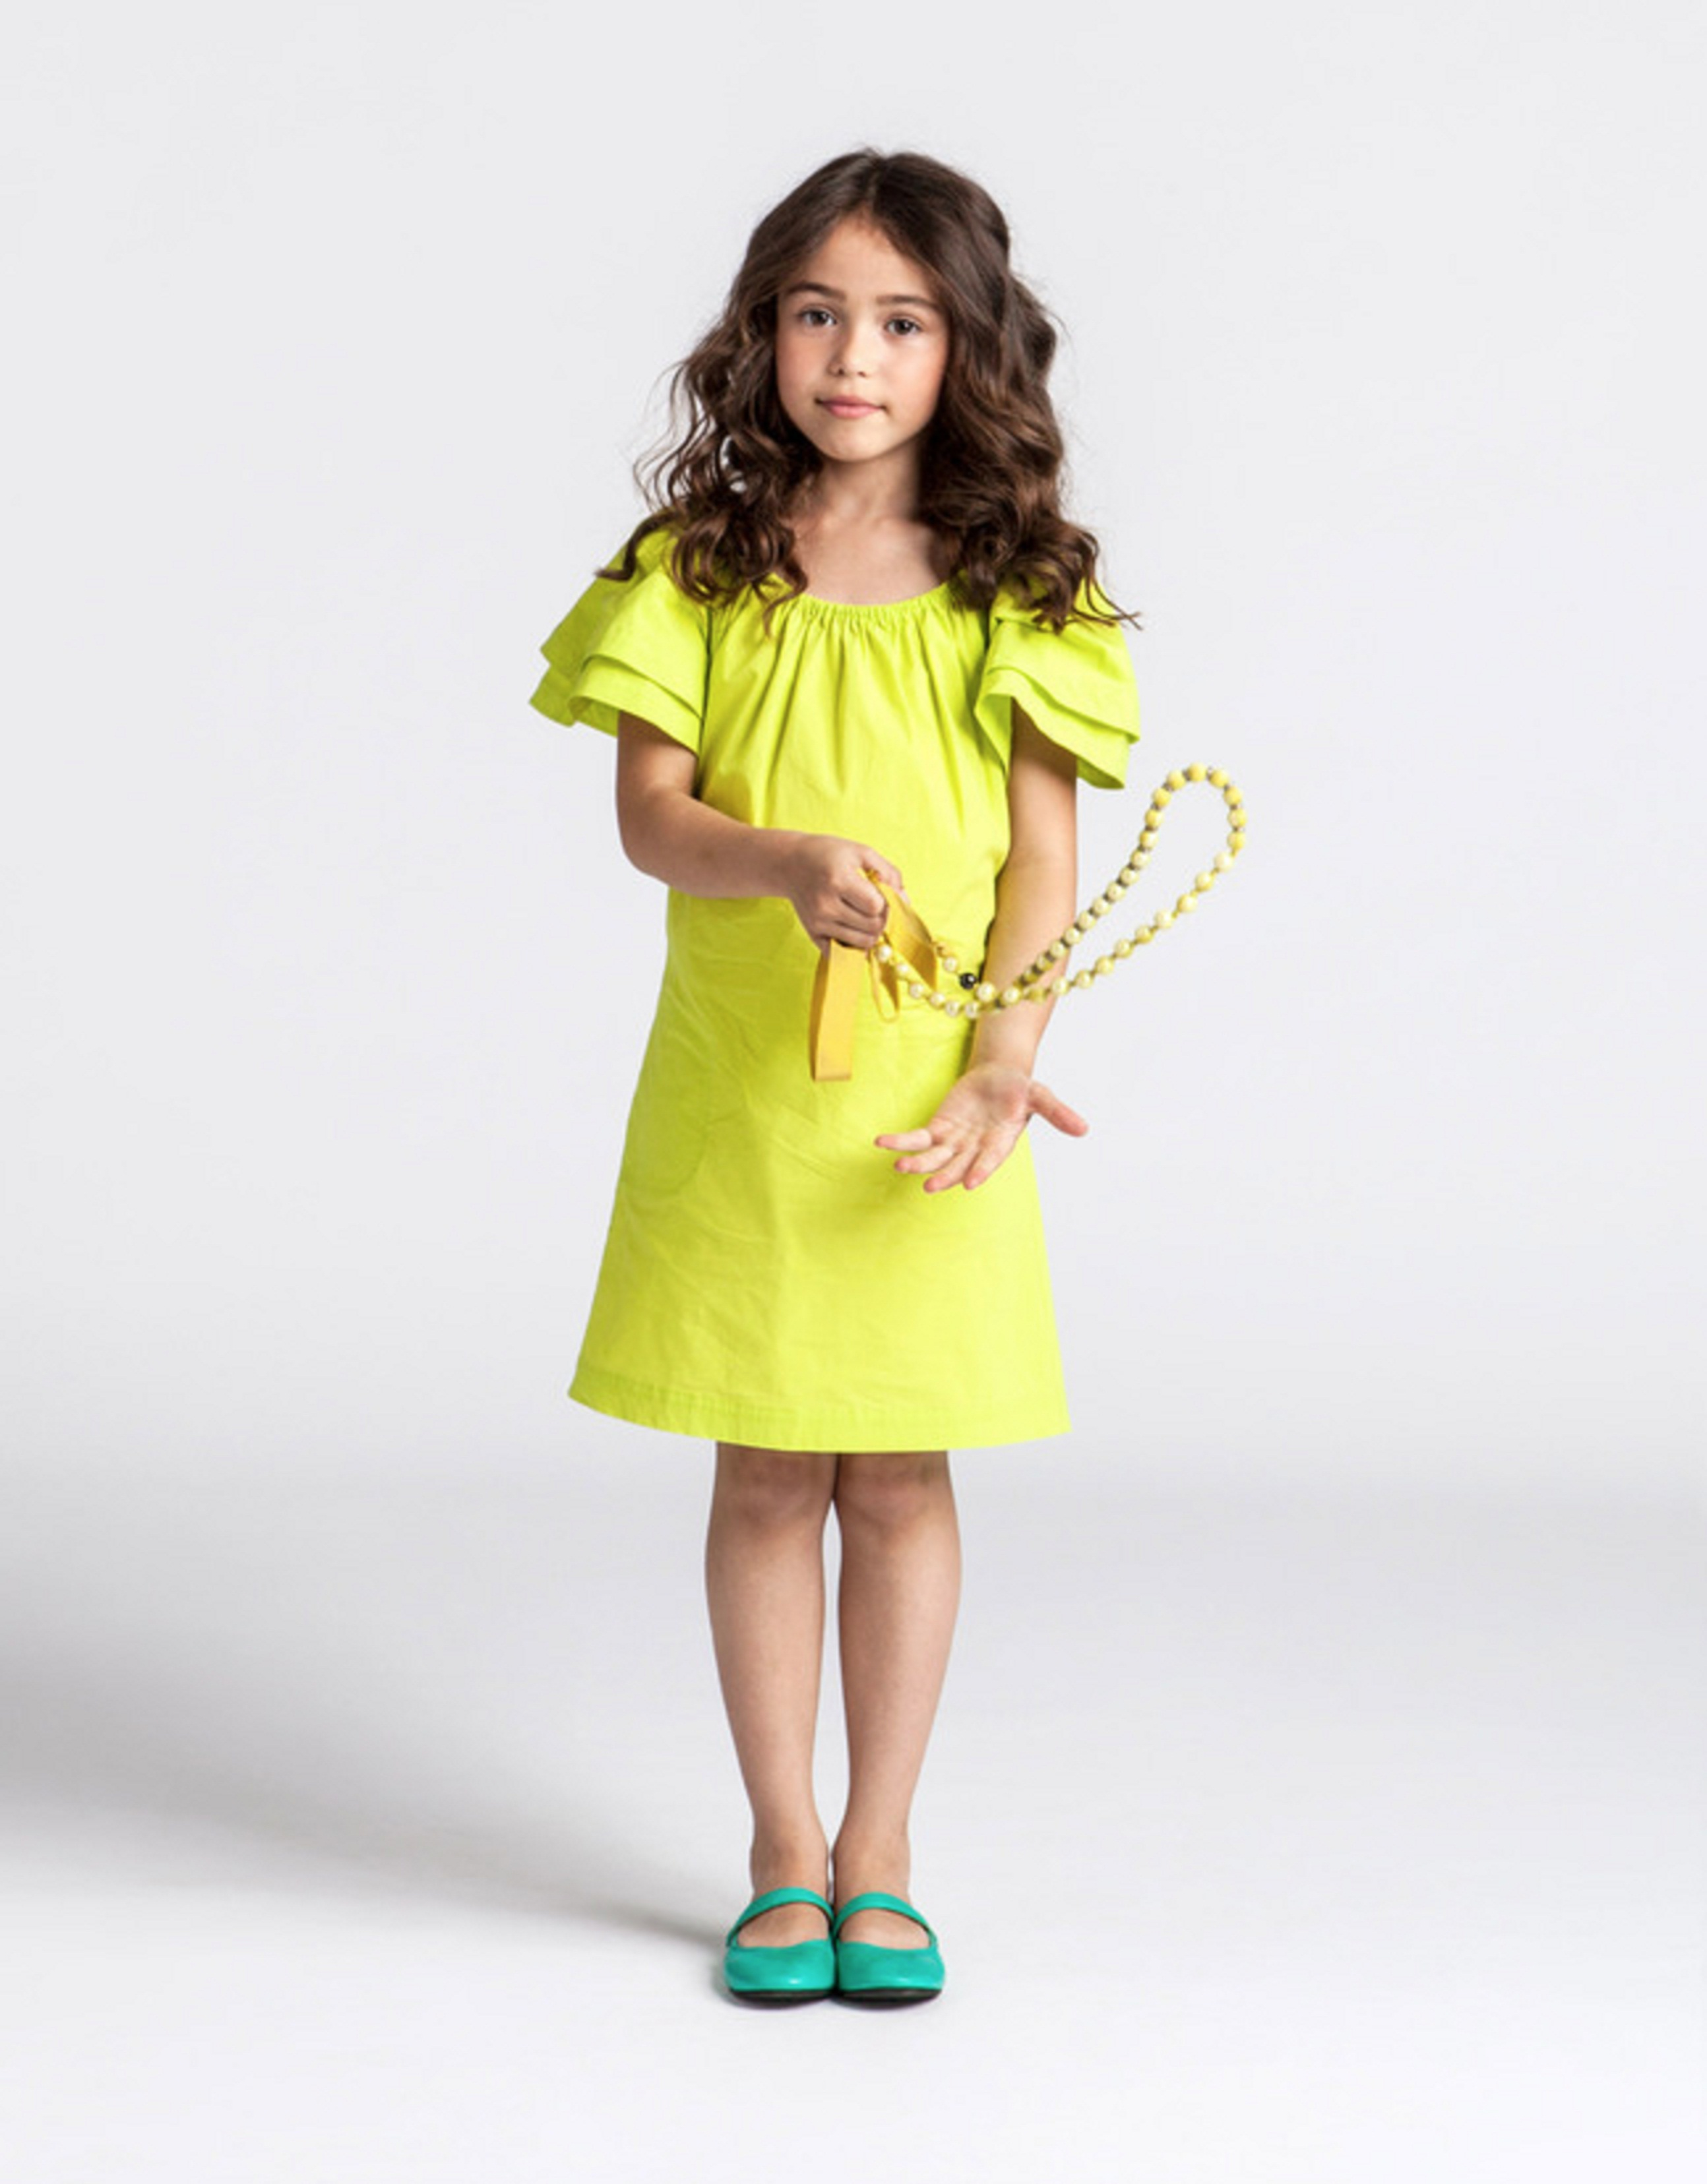 Fashion Kids Wallpapers High Quality